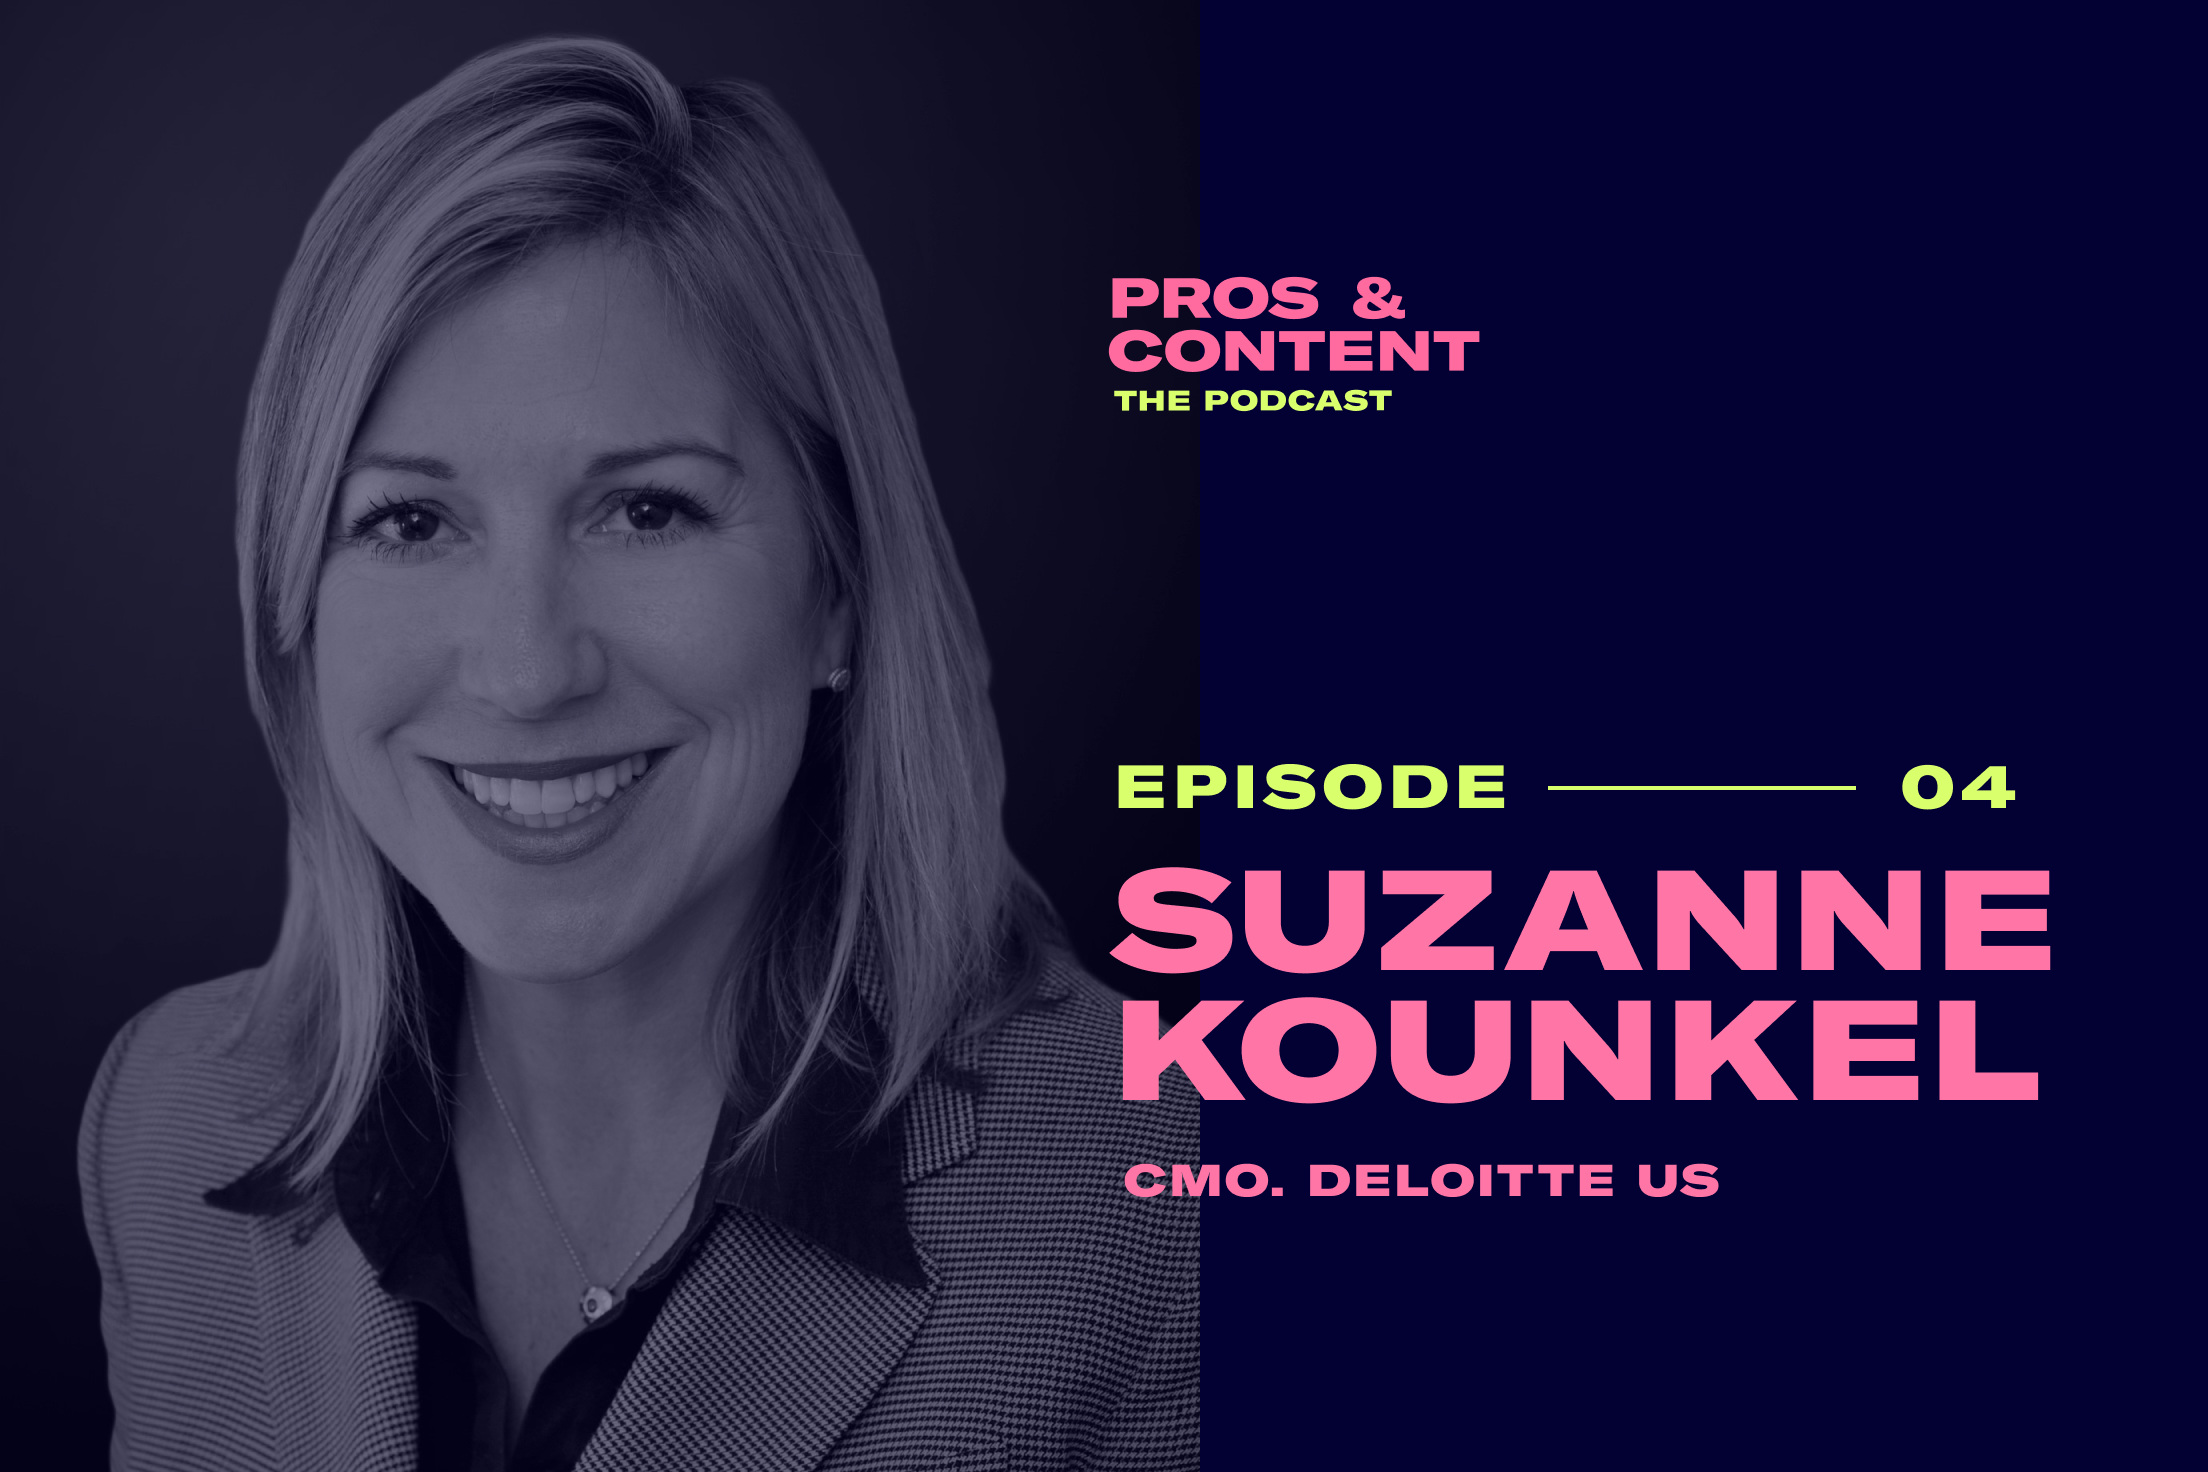 Pros & Content Podcast: Suzanne Kounkel (CMO of Deloitte US)